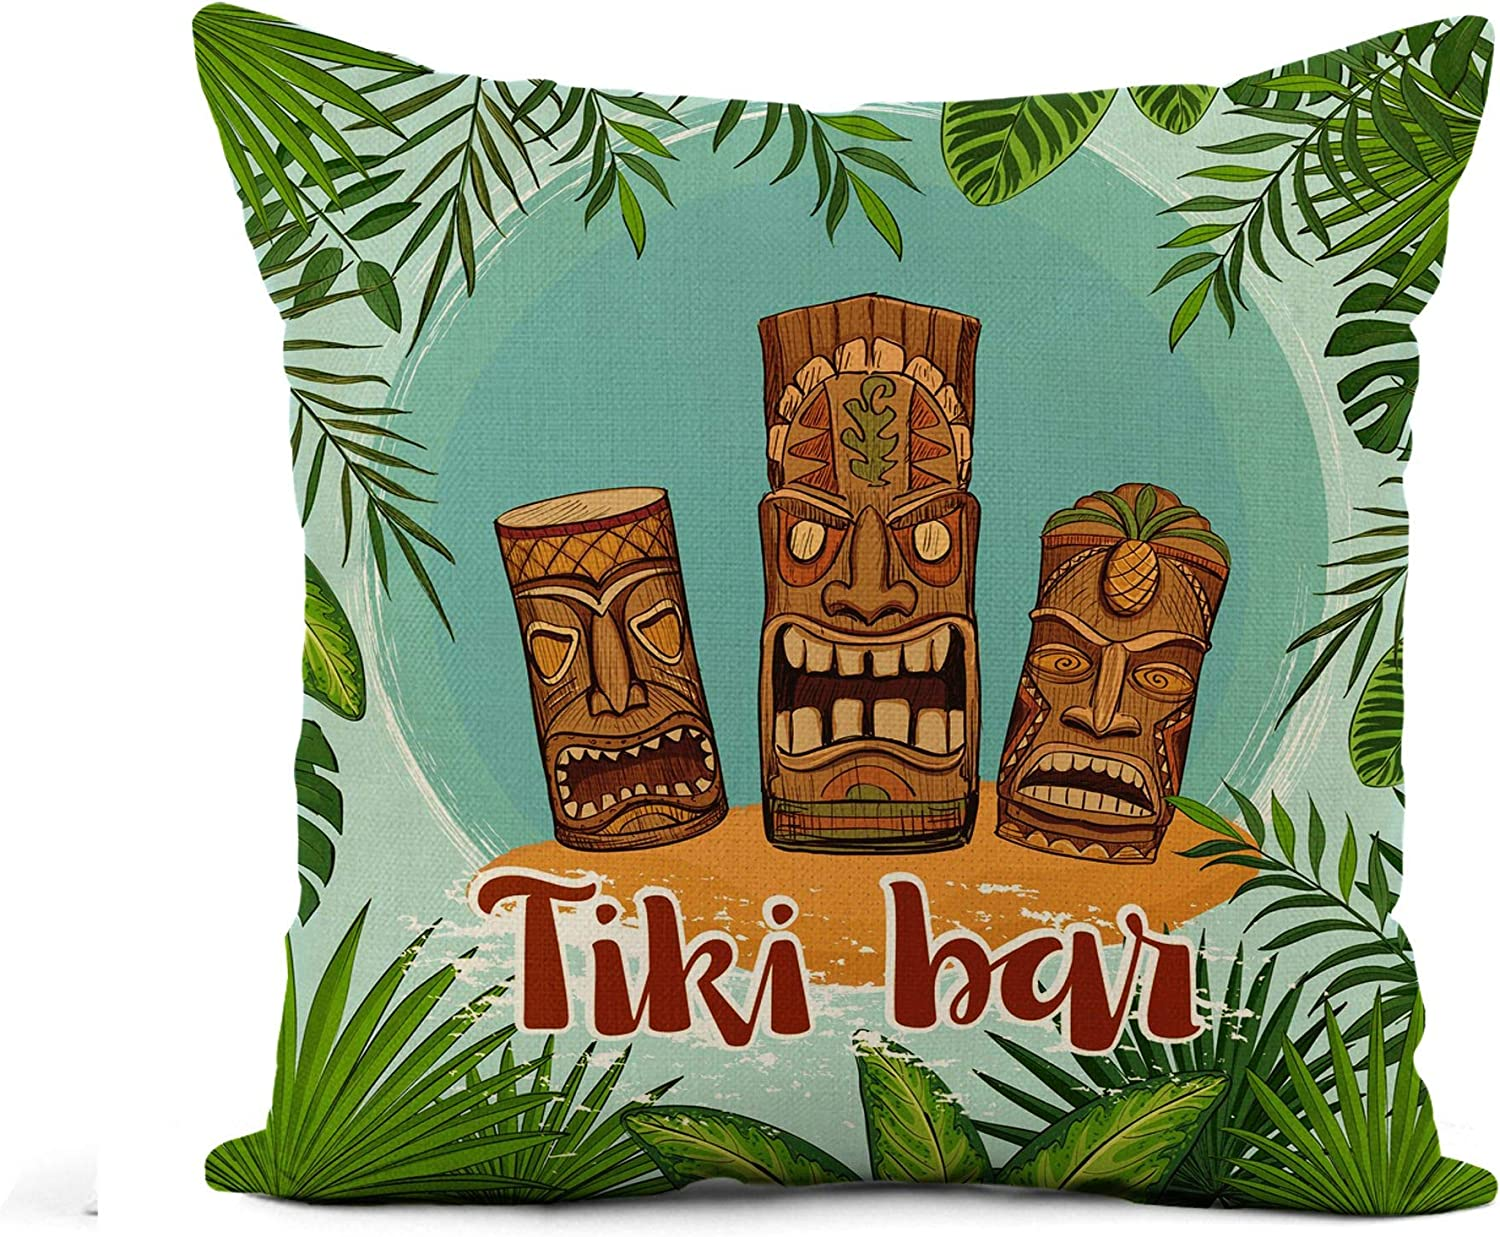 Awowee Flax Throw Pillow Cover Tiki Bar Traditional Hawaiian Idols Surrounded by Framework 18x18 Inches Pillowcase Home Decor Square Cotton Linen Pillow Case Cushion Cover